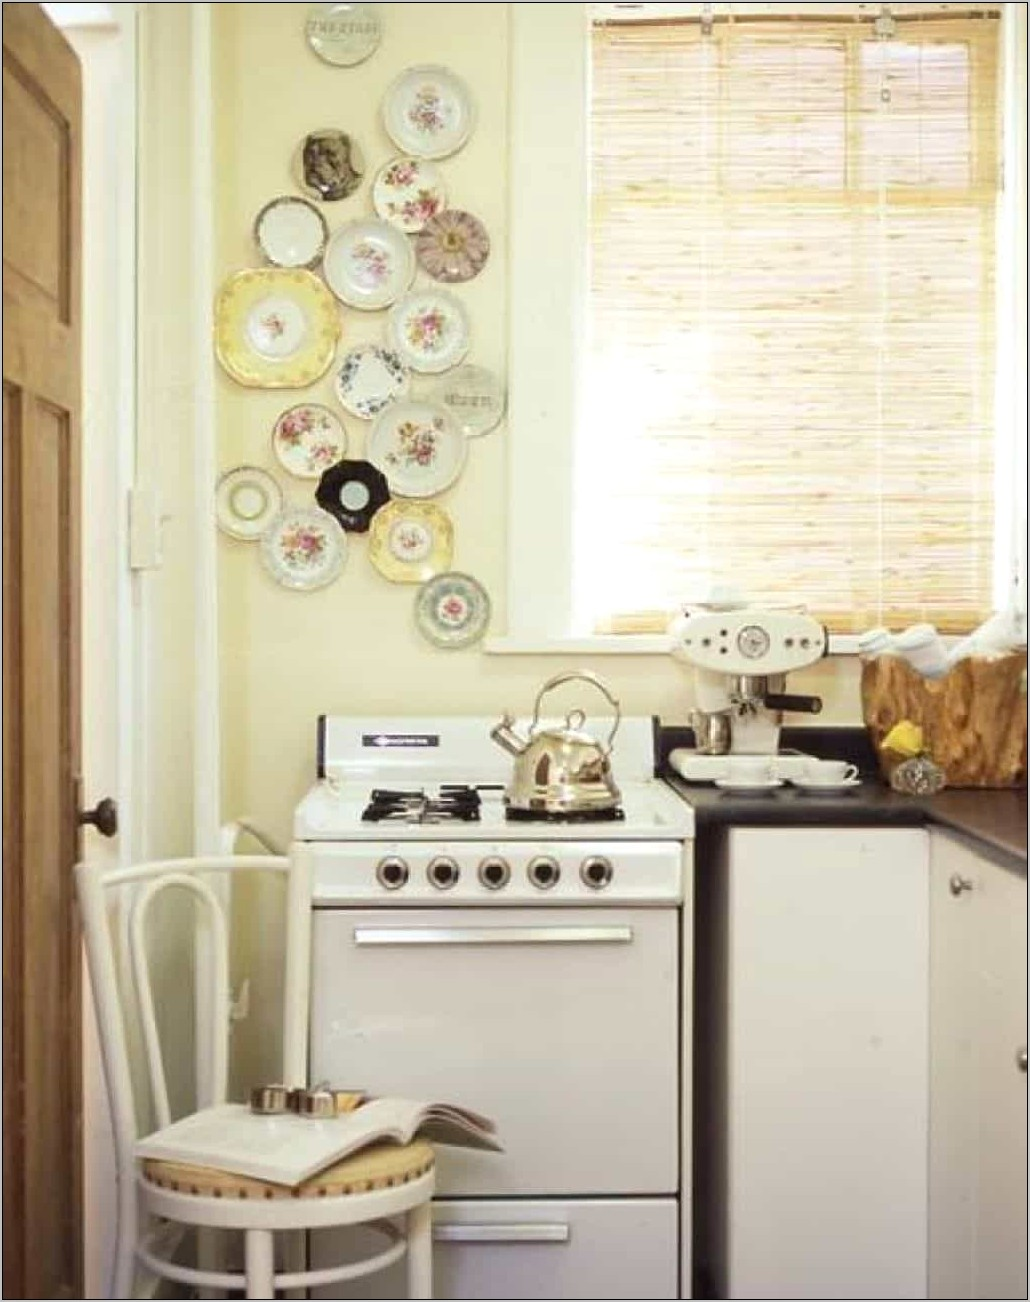 Decorating A Kitchen Wall With Plates